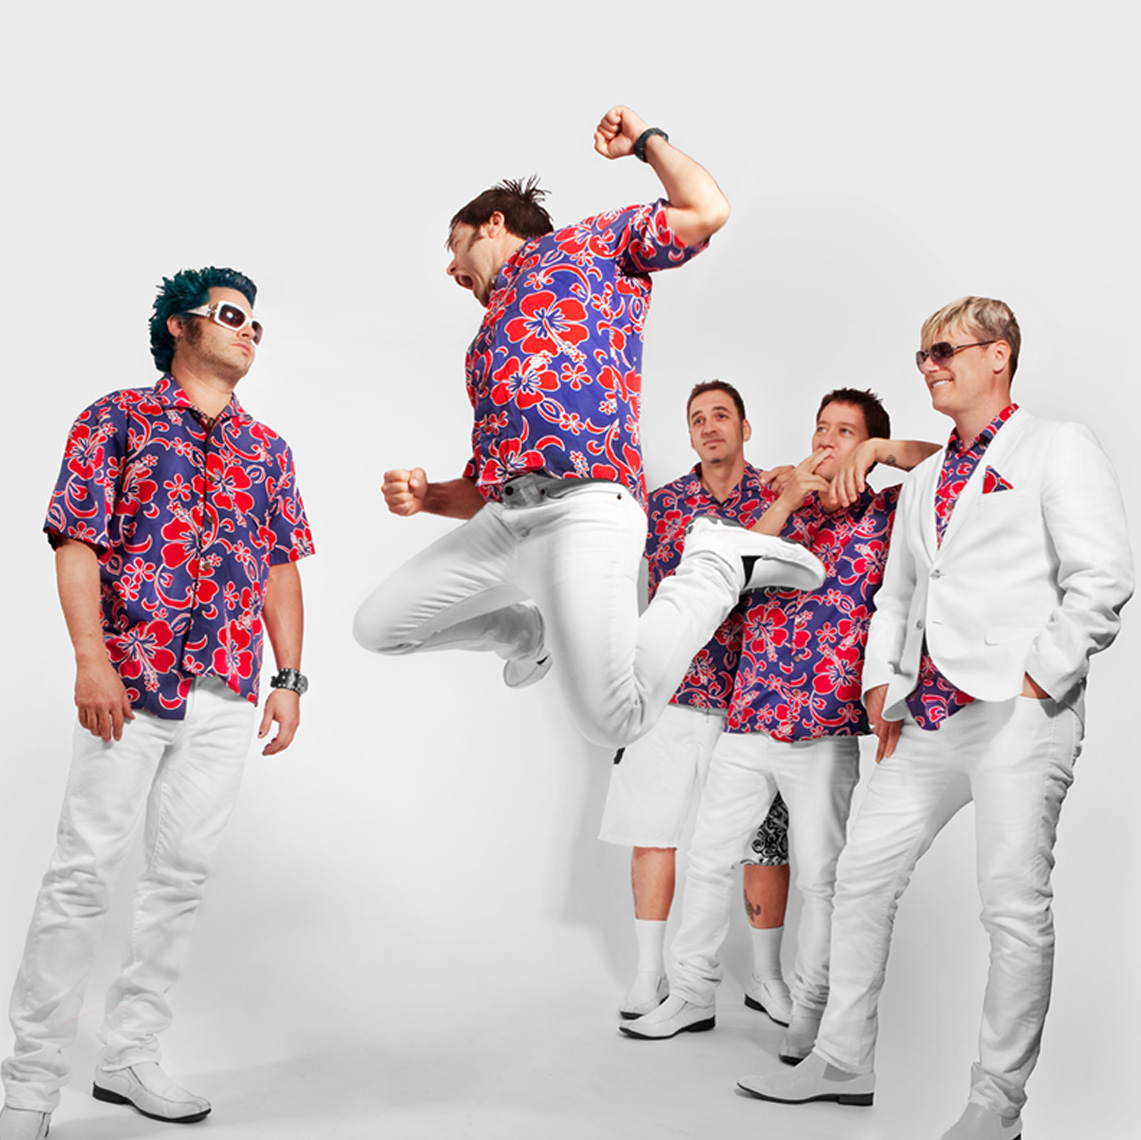 Me First and the Gimme Gimmes by Carrie Schechter for FatWreckchords